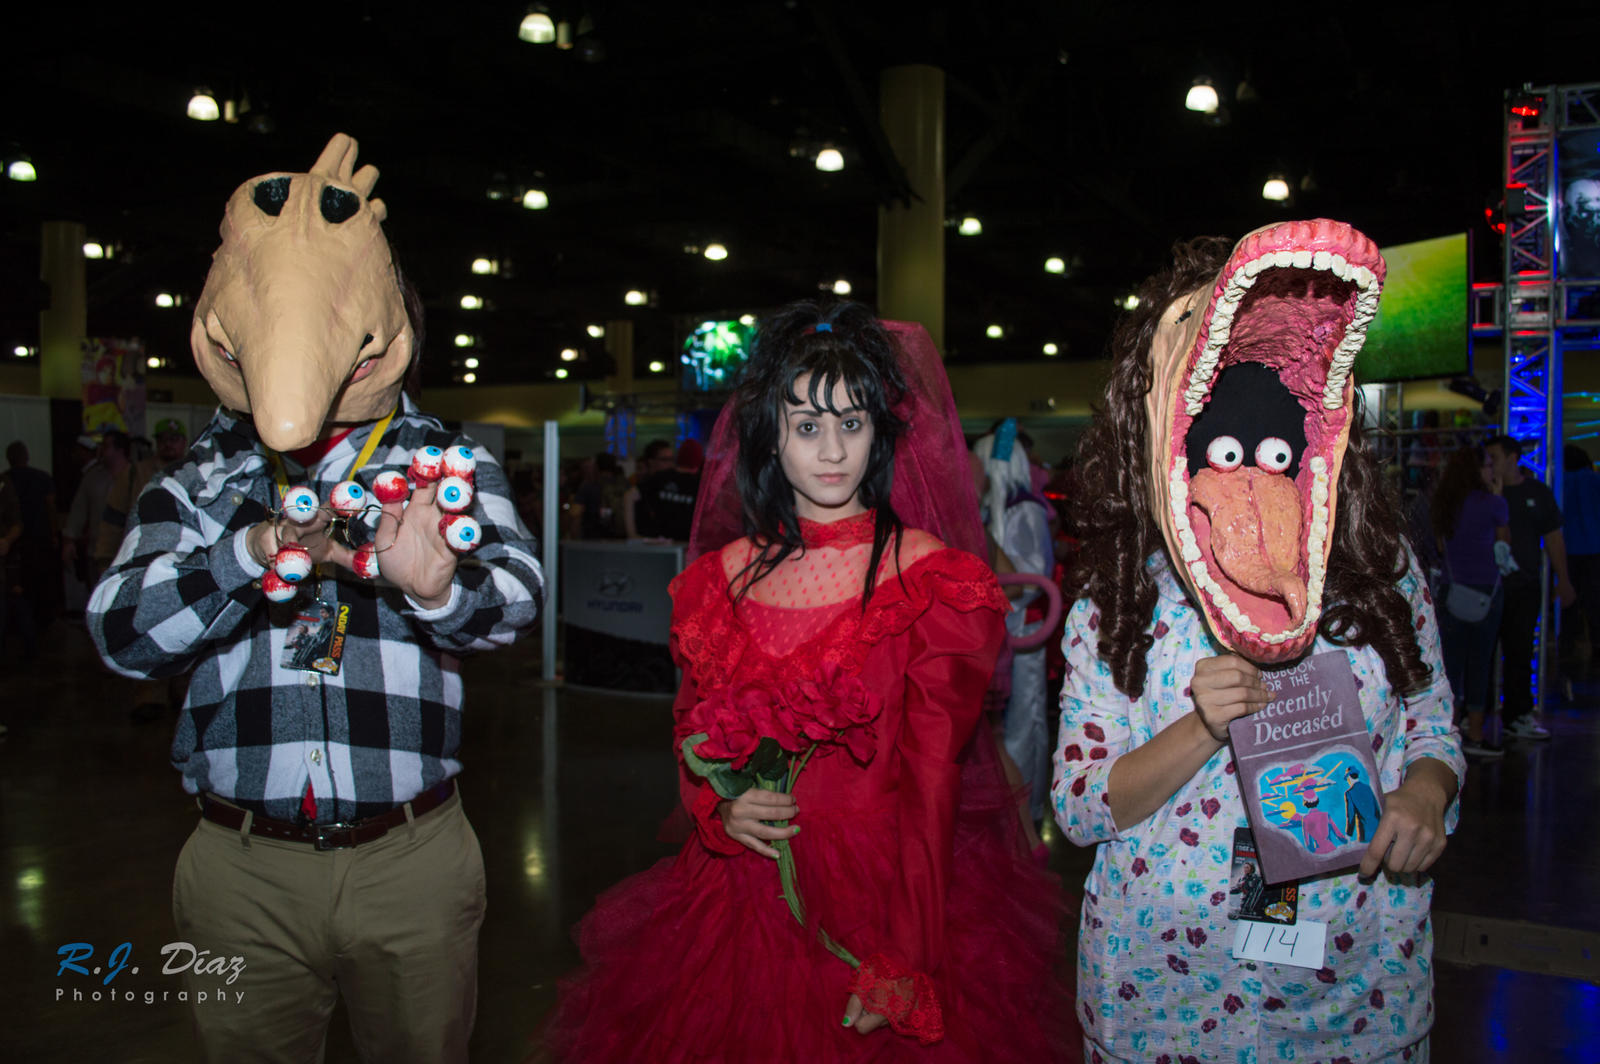 beetlejuice adam lydia and barbara prcc 2014 by